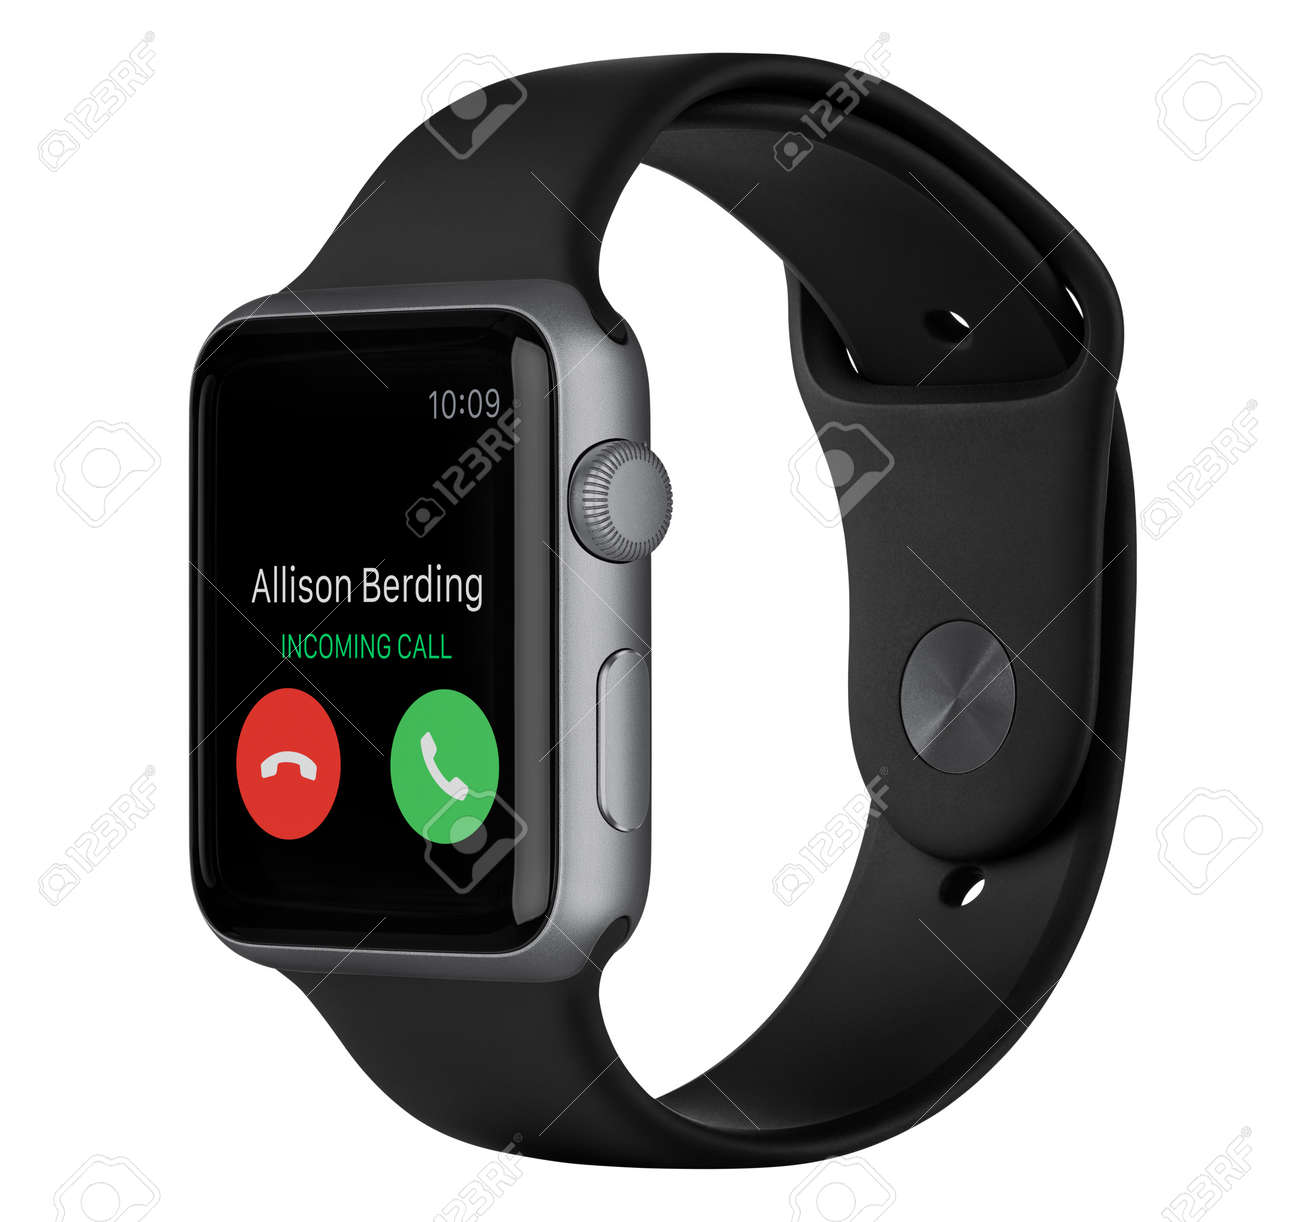 on sale 9477c e1291 Varna, Bulgaria - October 16, 2015: Side view of Apple Watch..